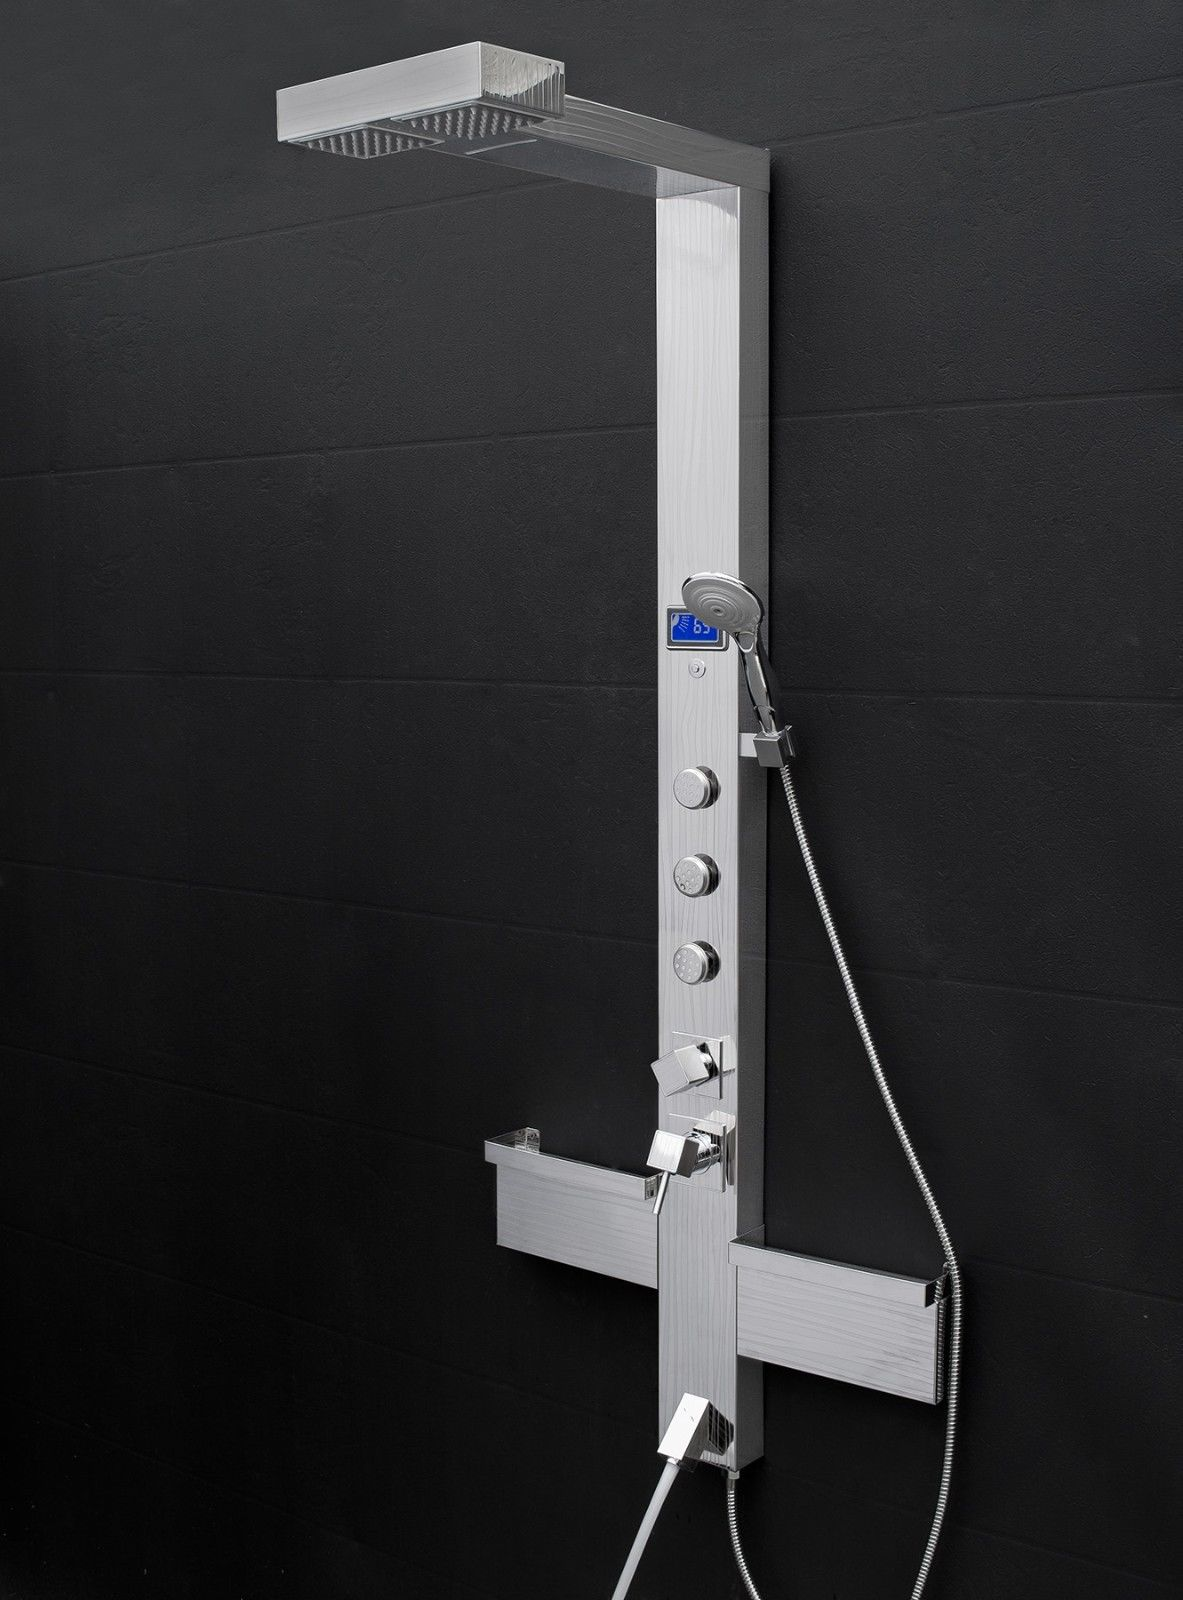 Hammer Stainless Steel Rainfall Shower Panel with Handheld Shower Head